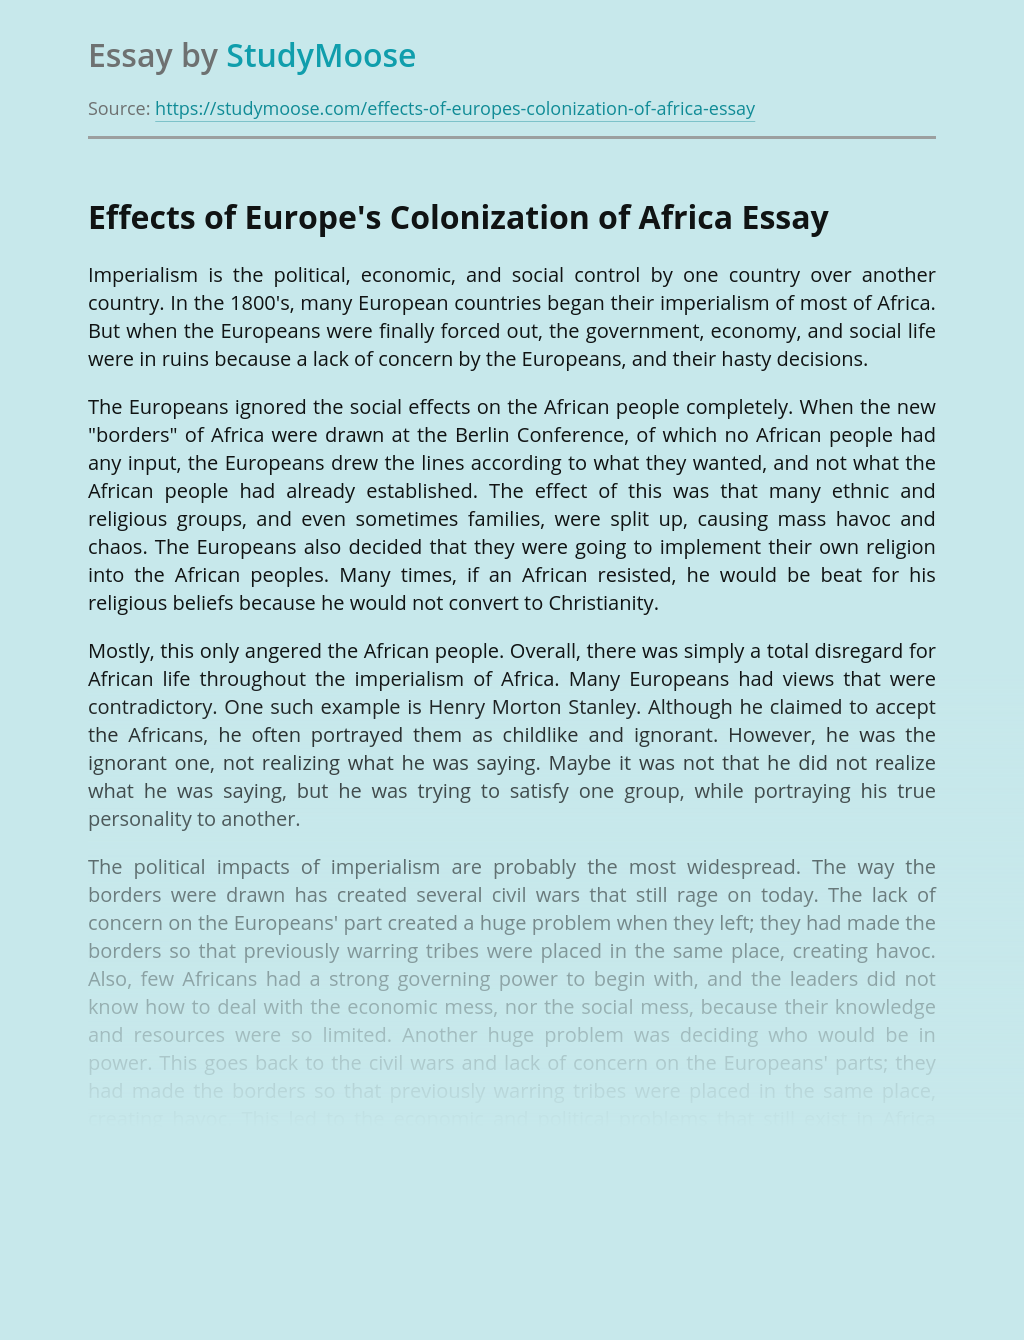 Effects of Europe's Colonization of Africa